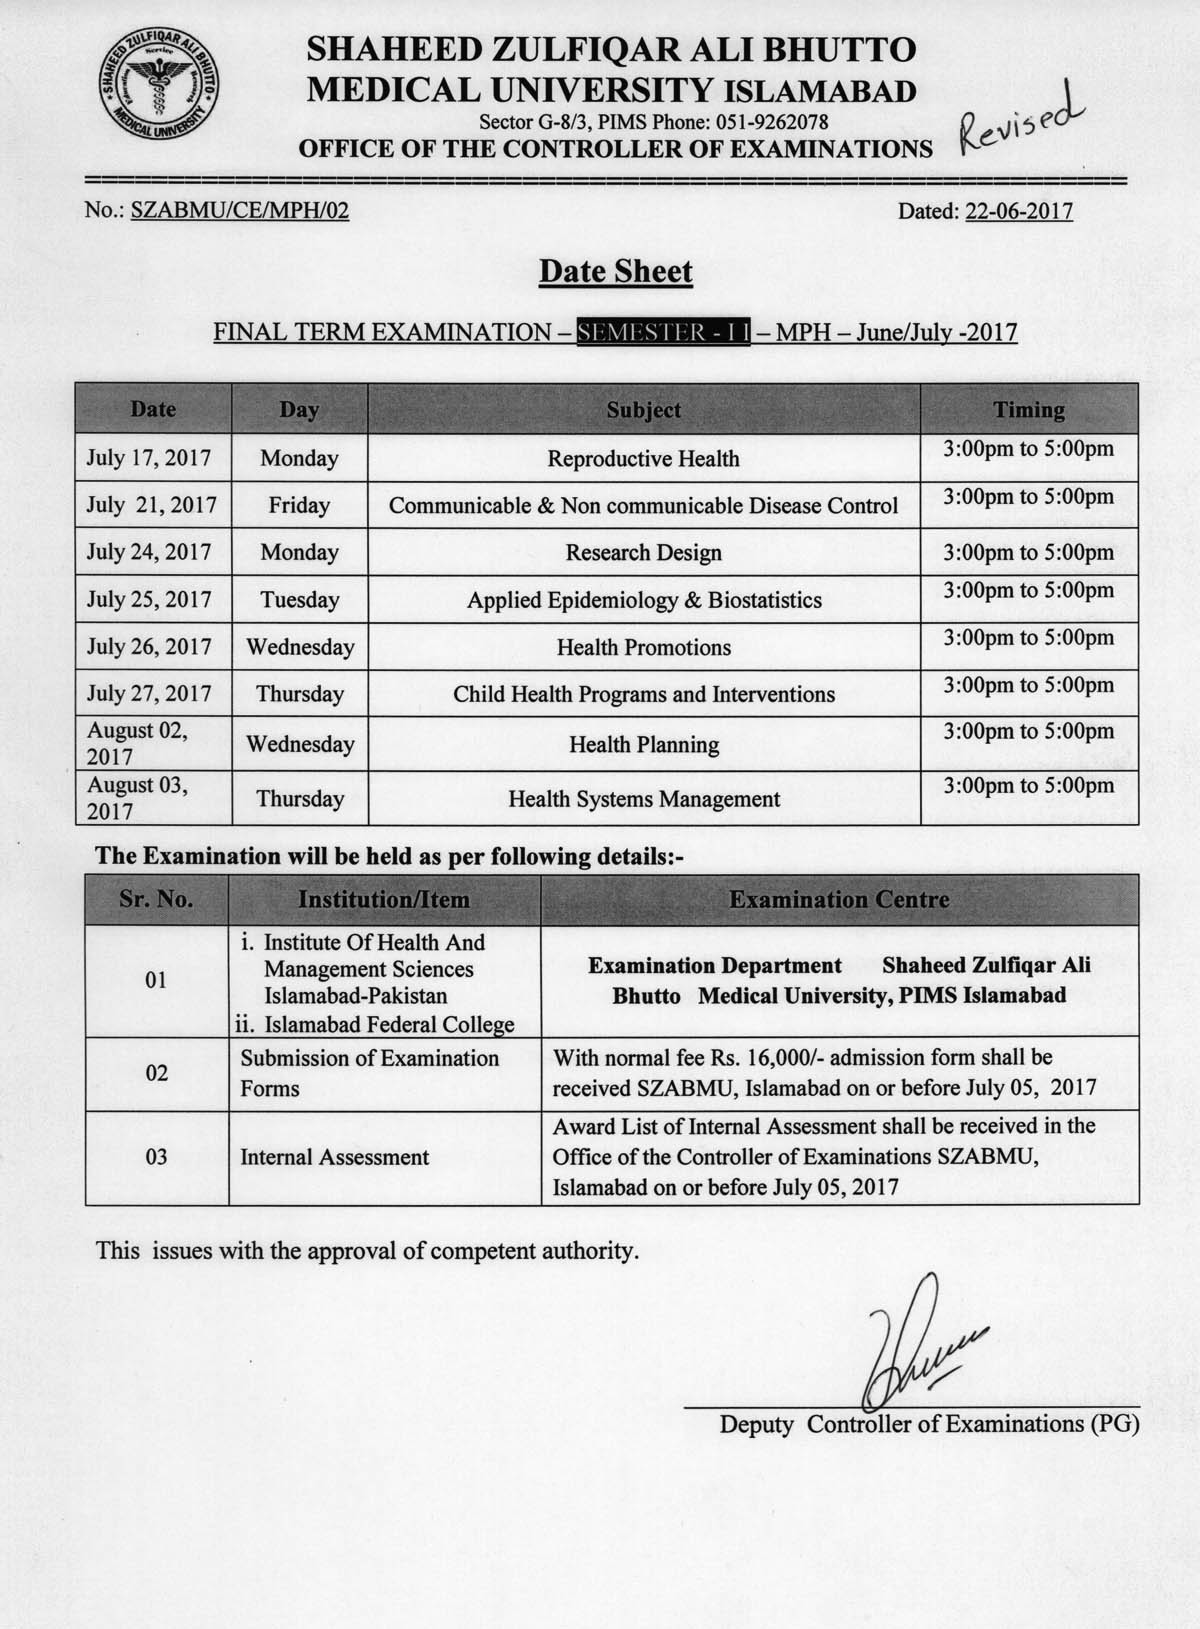 Revised Date Sheet - MPH Final Term Examinations